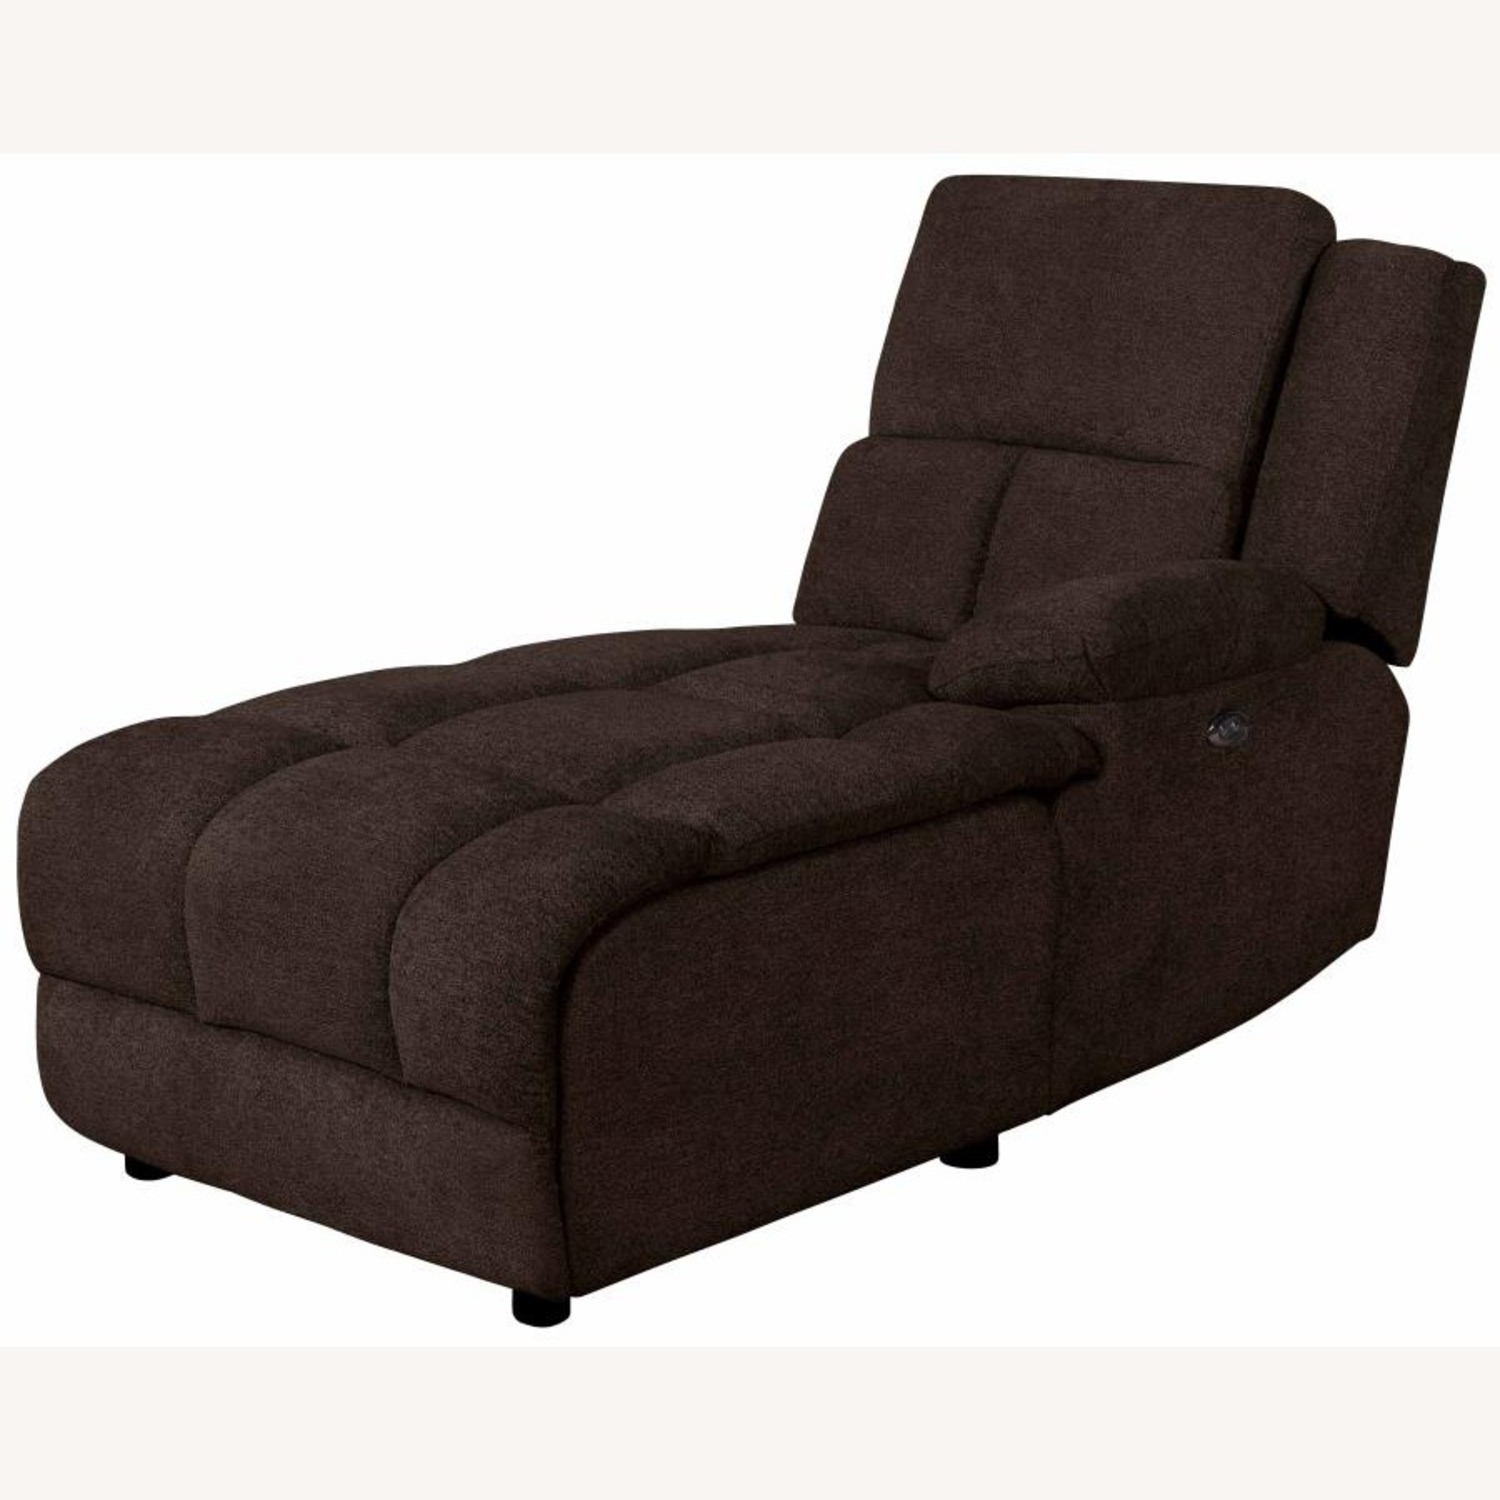 6Piece Power Sectional In Brown Performance Fabric - image-6